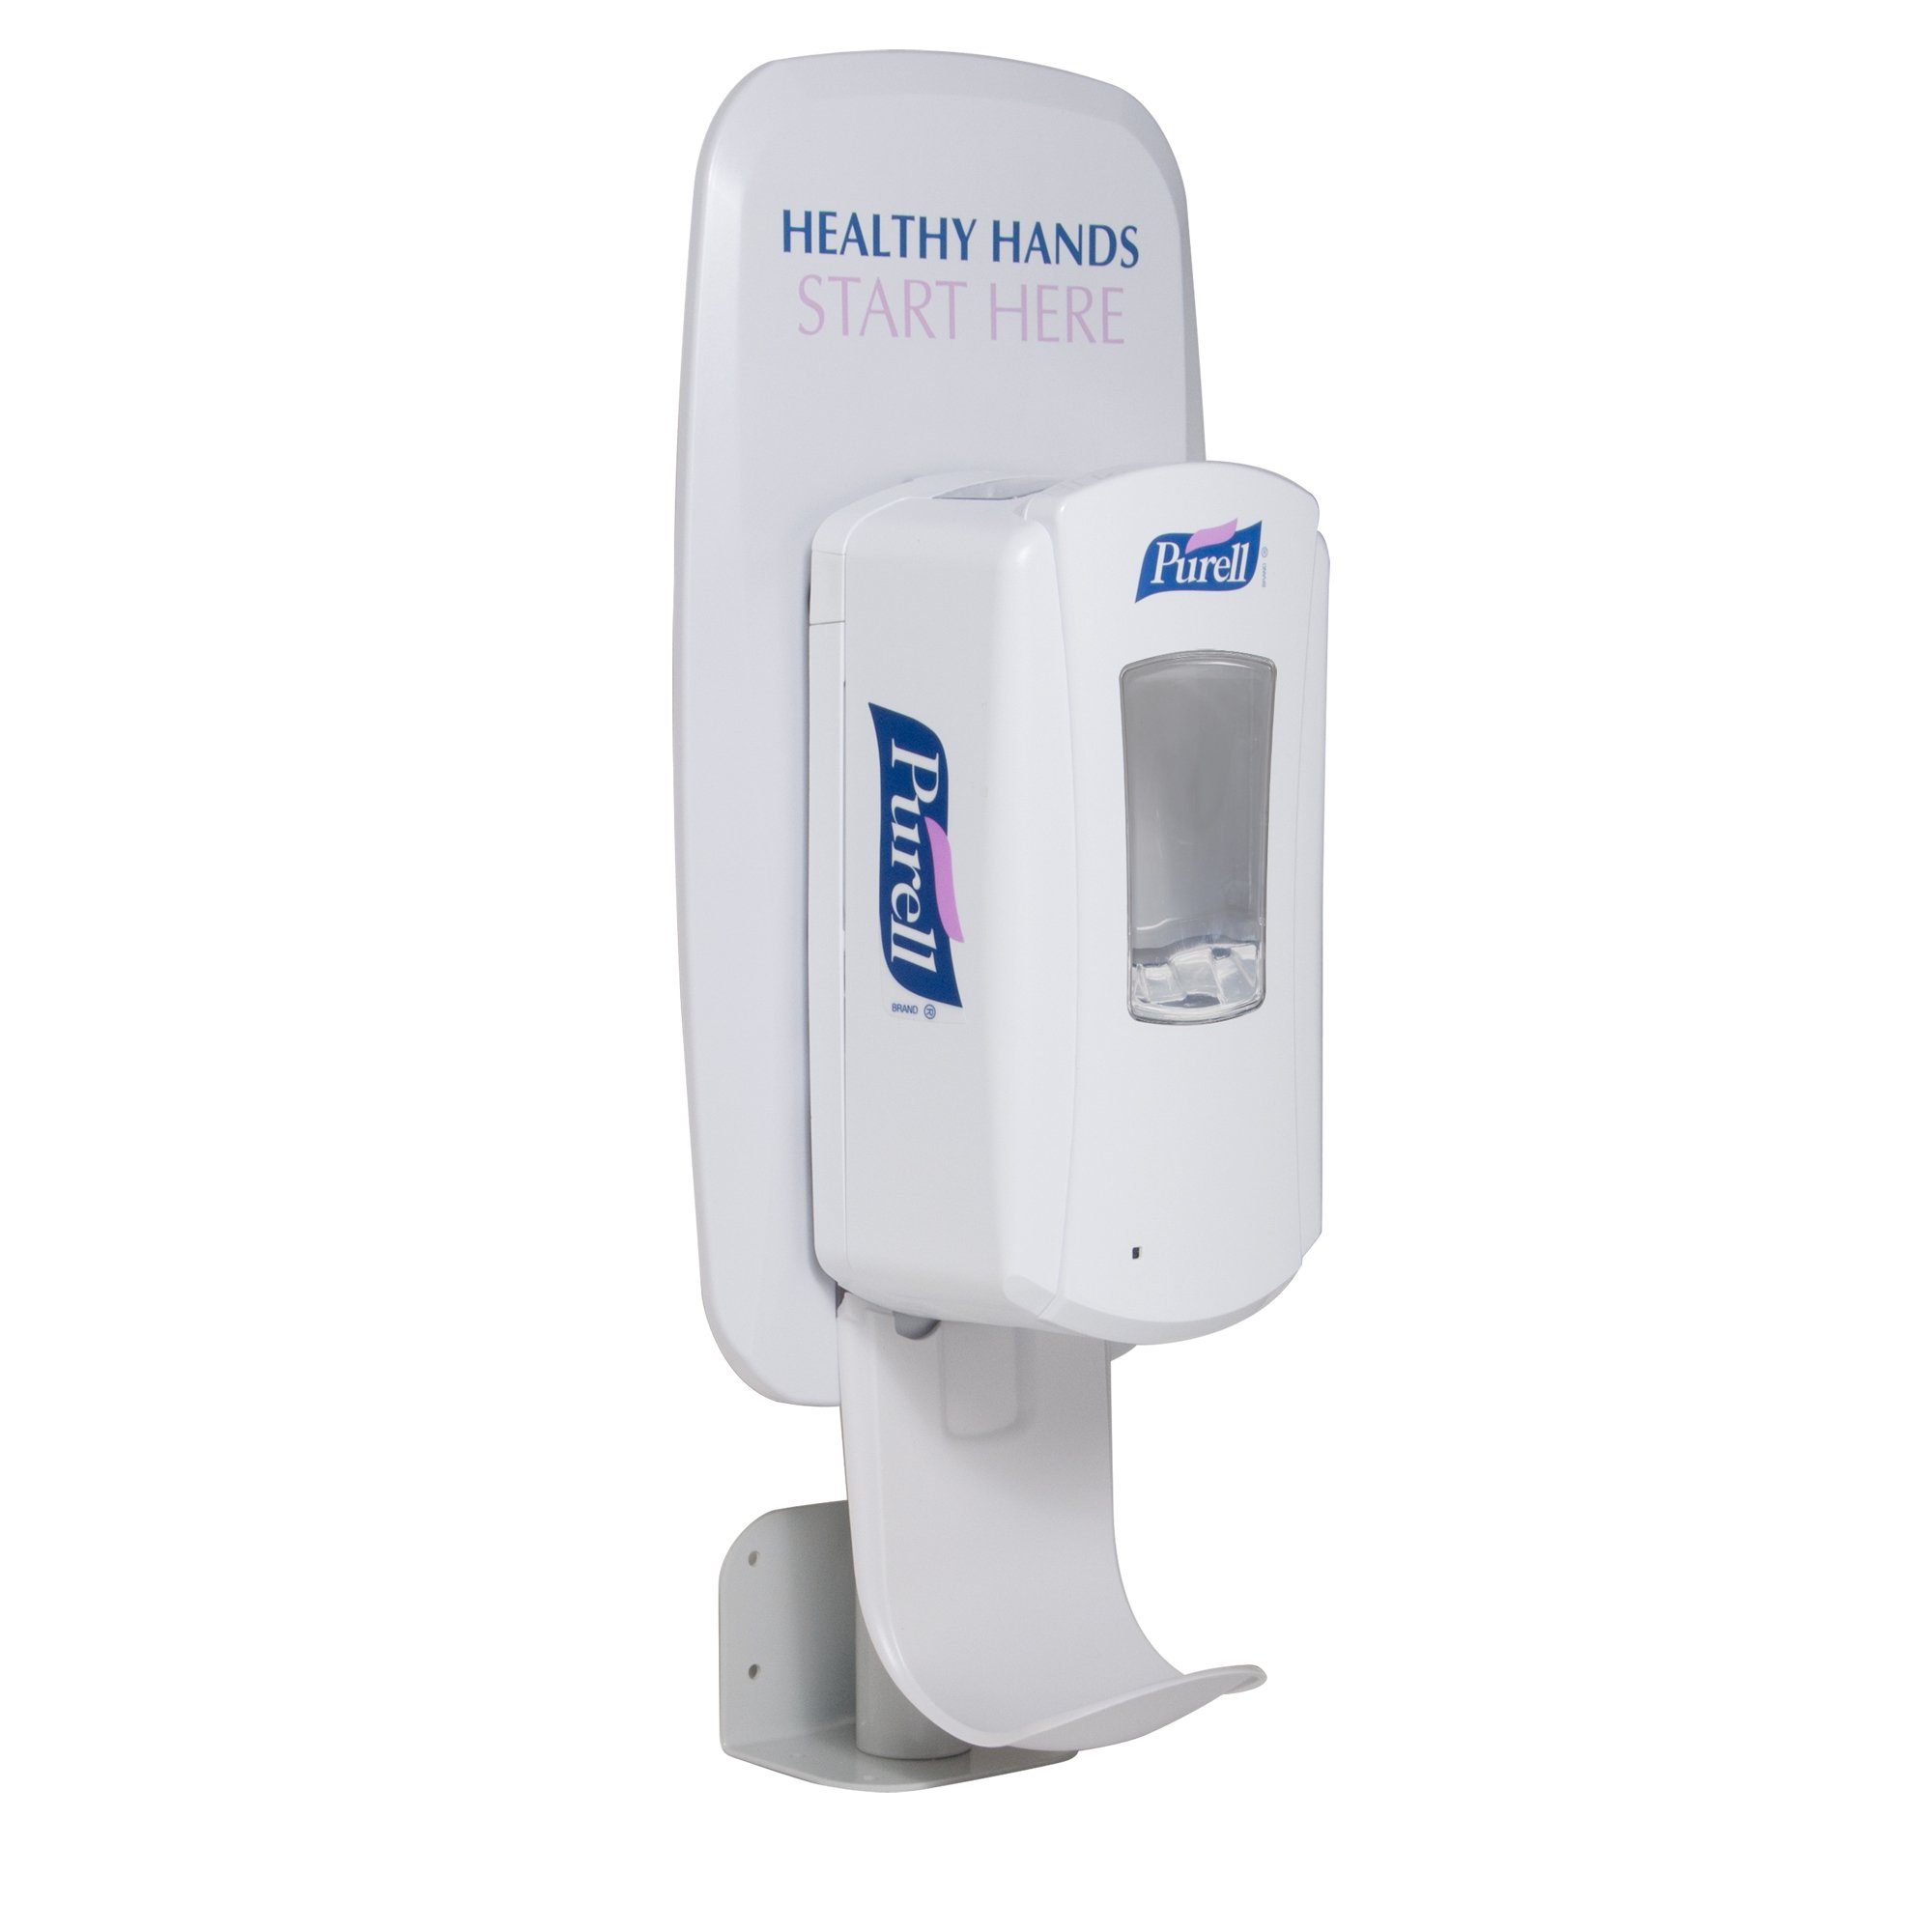 PURELL Universal Wal or Counter Mount LTX or TFX Dispenser Stand, PURELL LTX and TFX Touch-Free Style Dispensers Sold Separately - 2427-DS